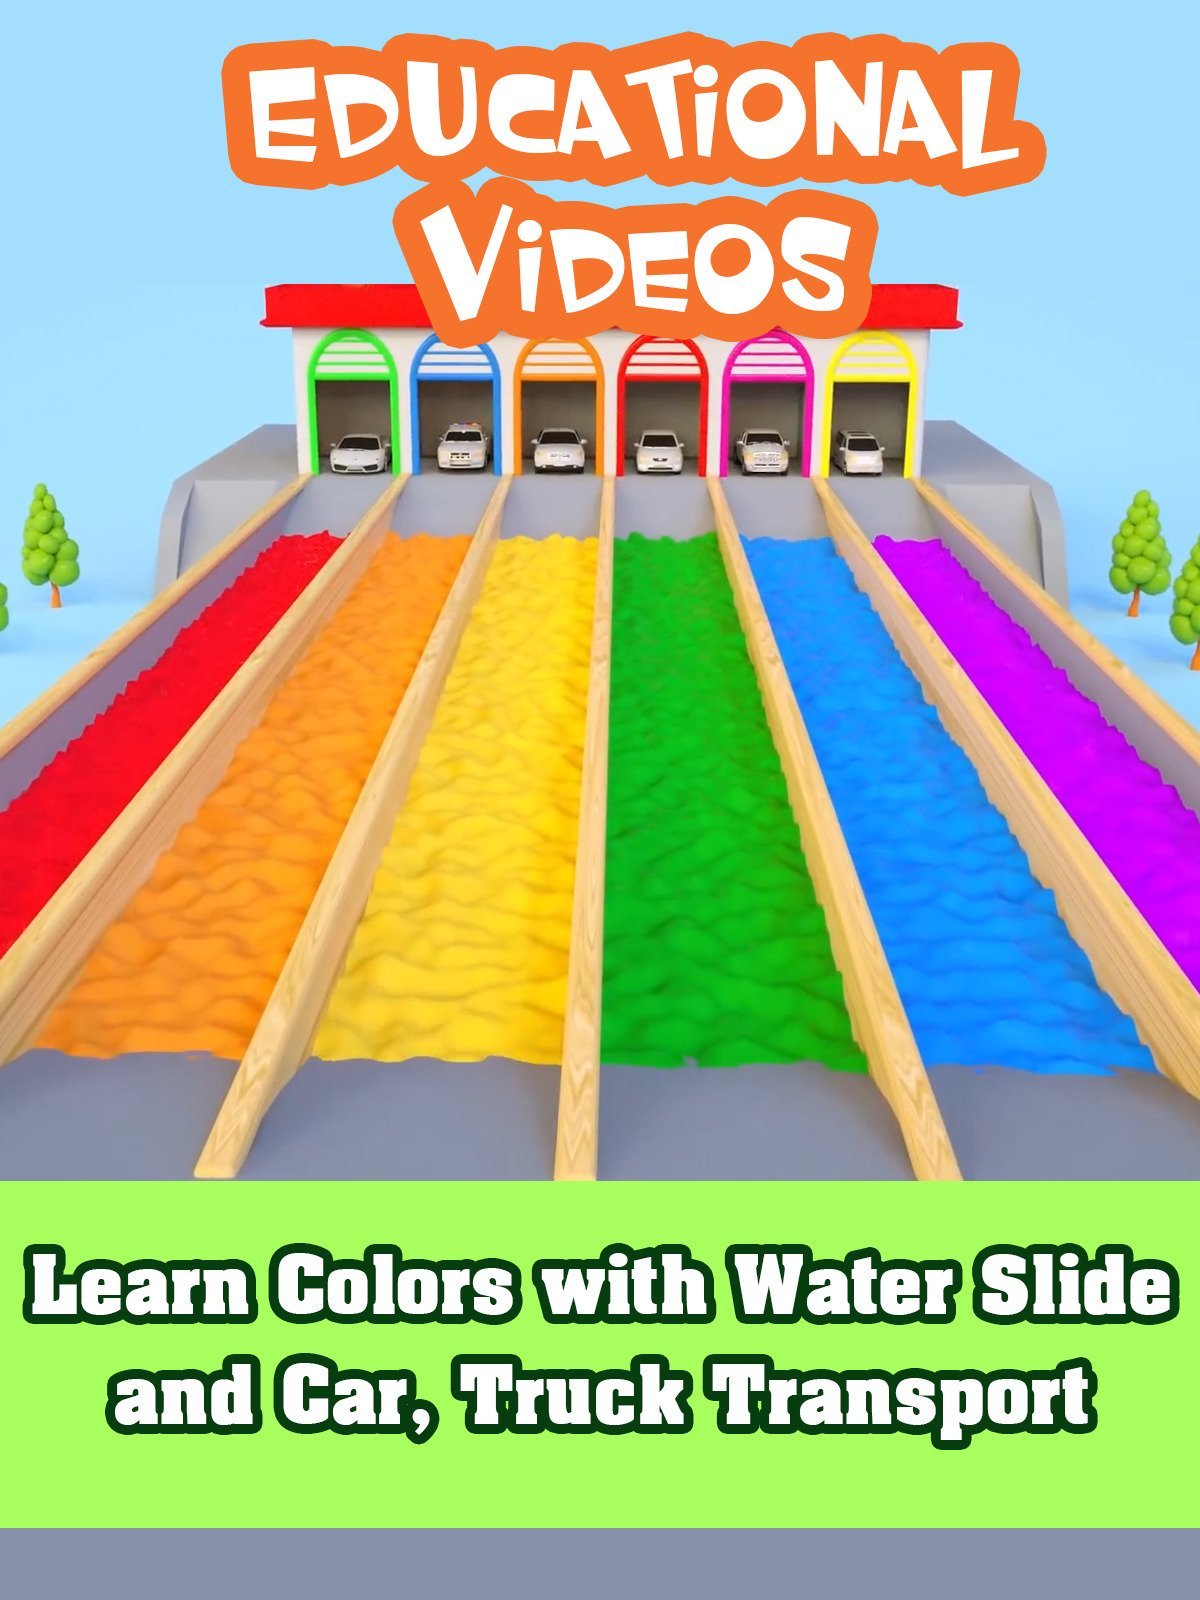 Learn Colors with Water Slide and Car, Truck Transport